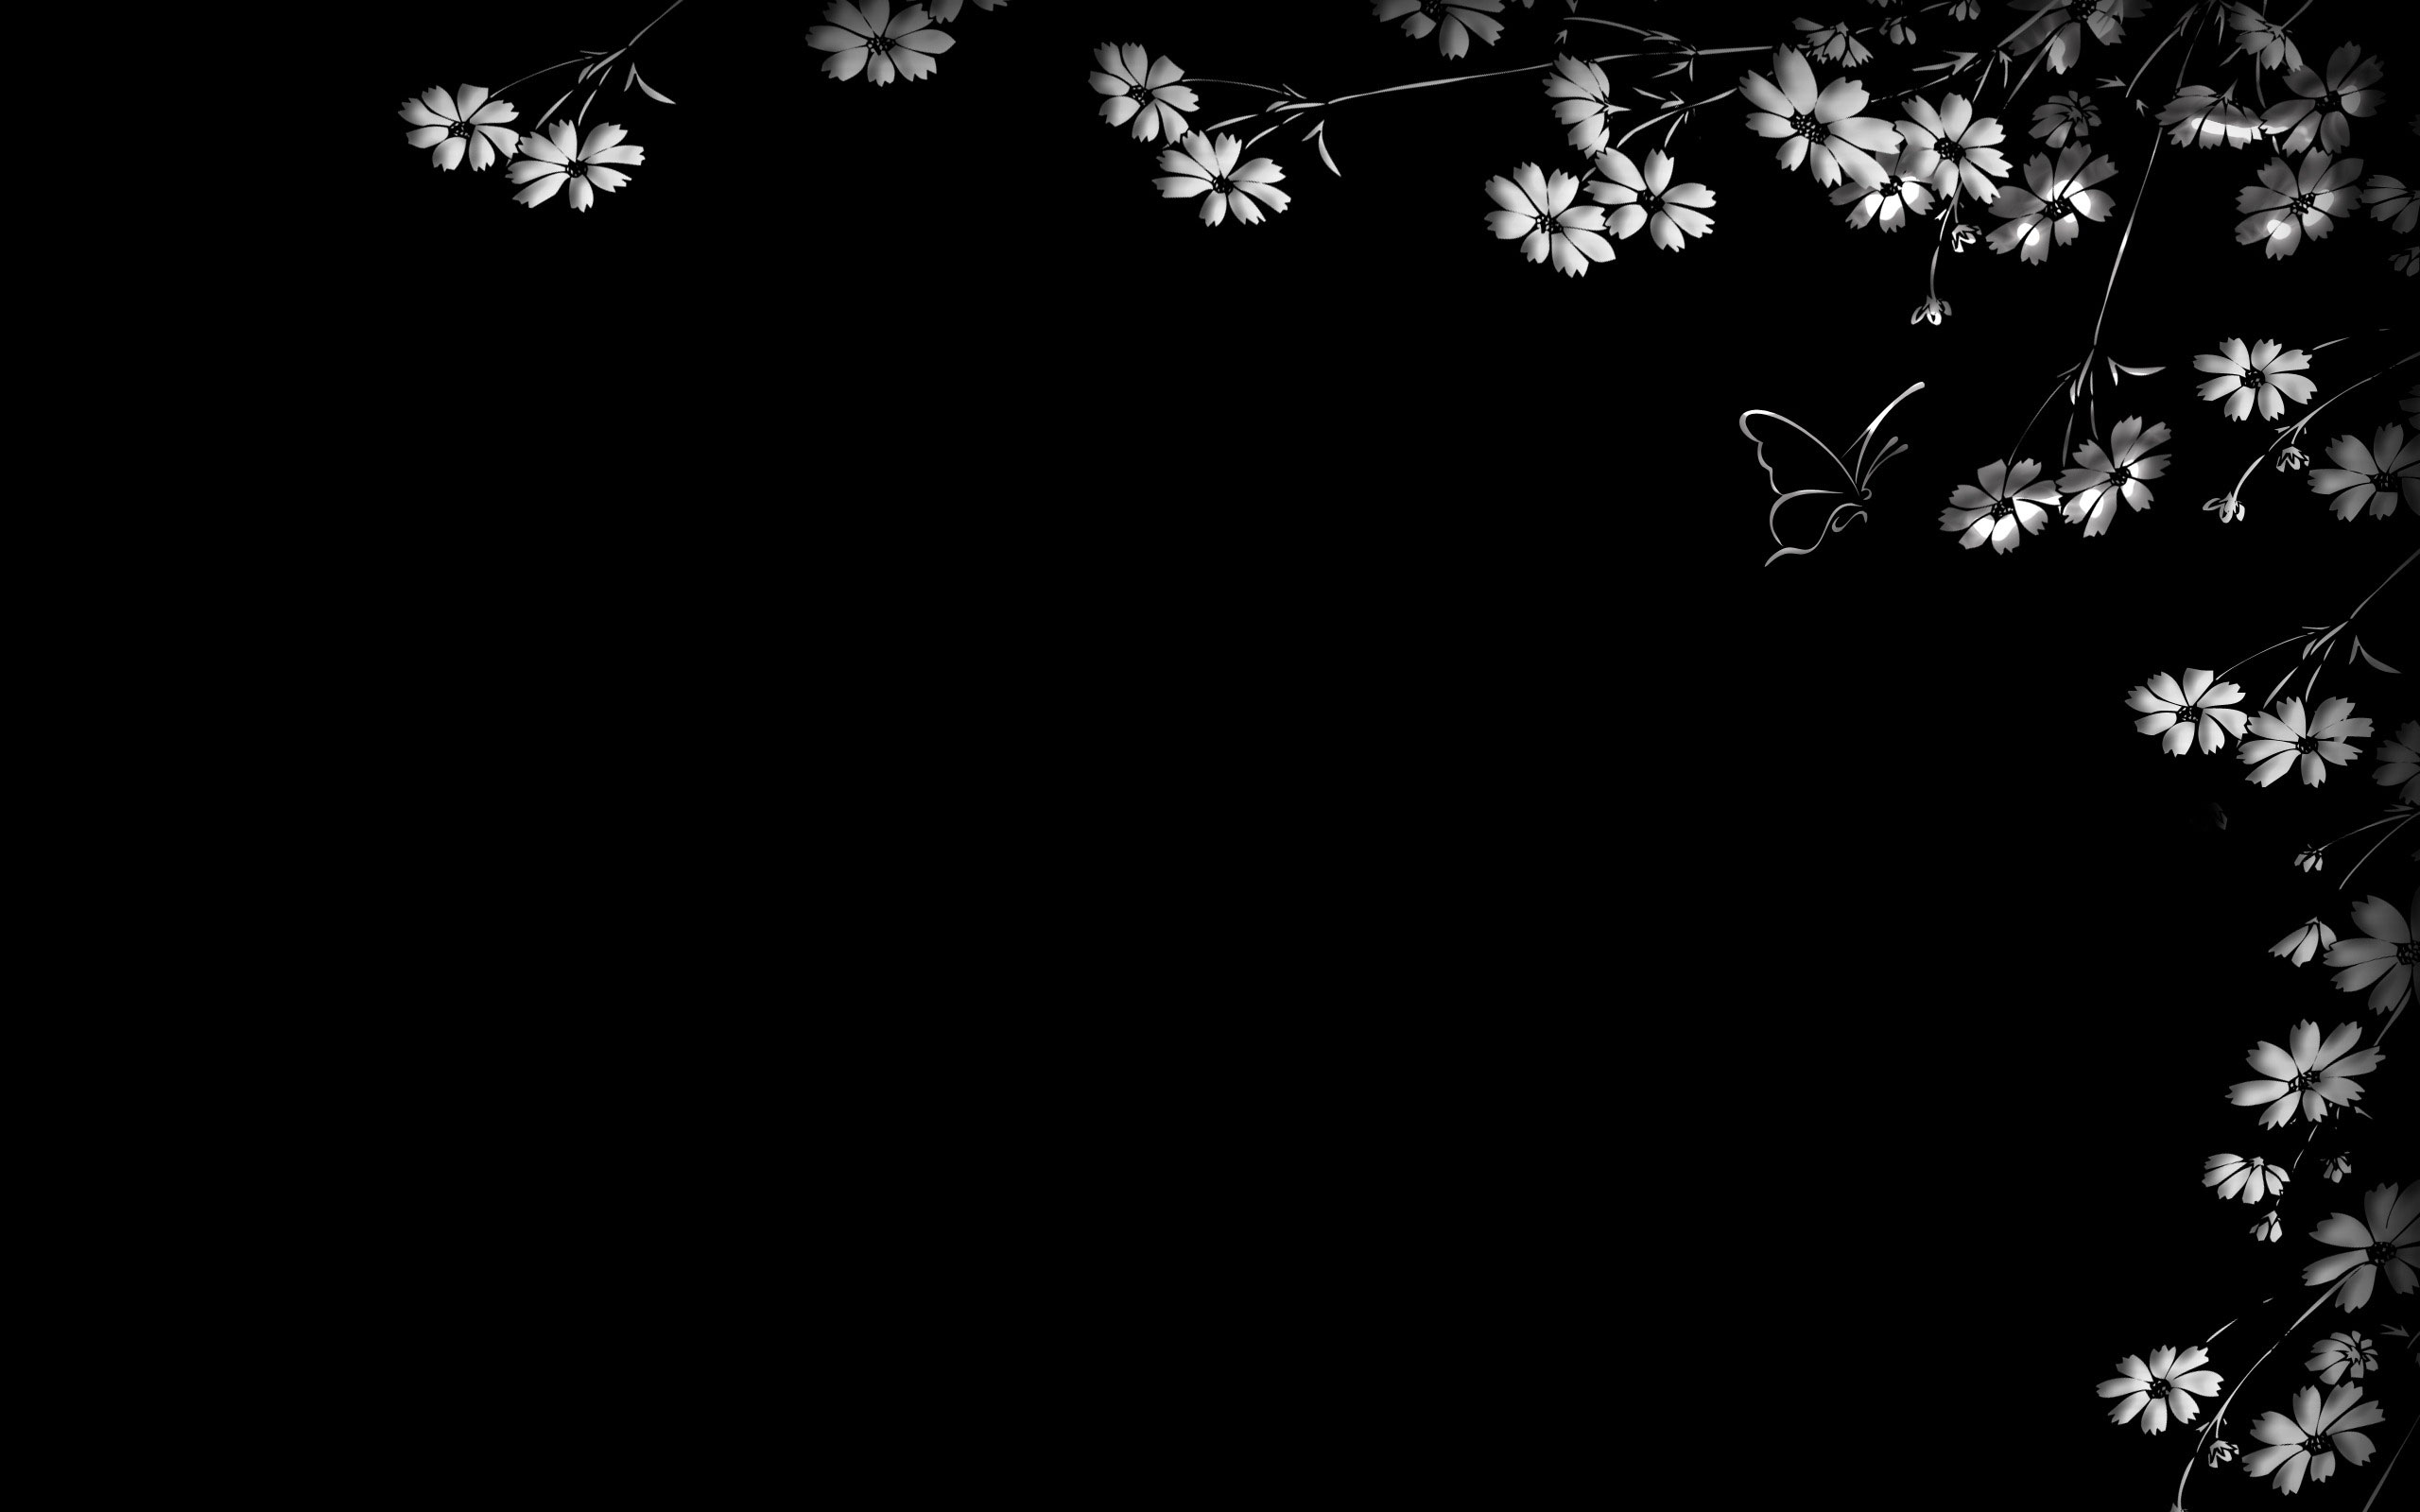 Black And White Floral Wallpaper 2560x1600 57212